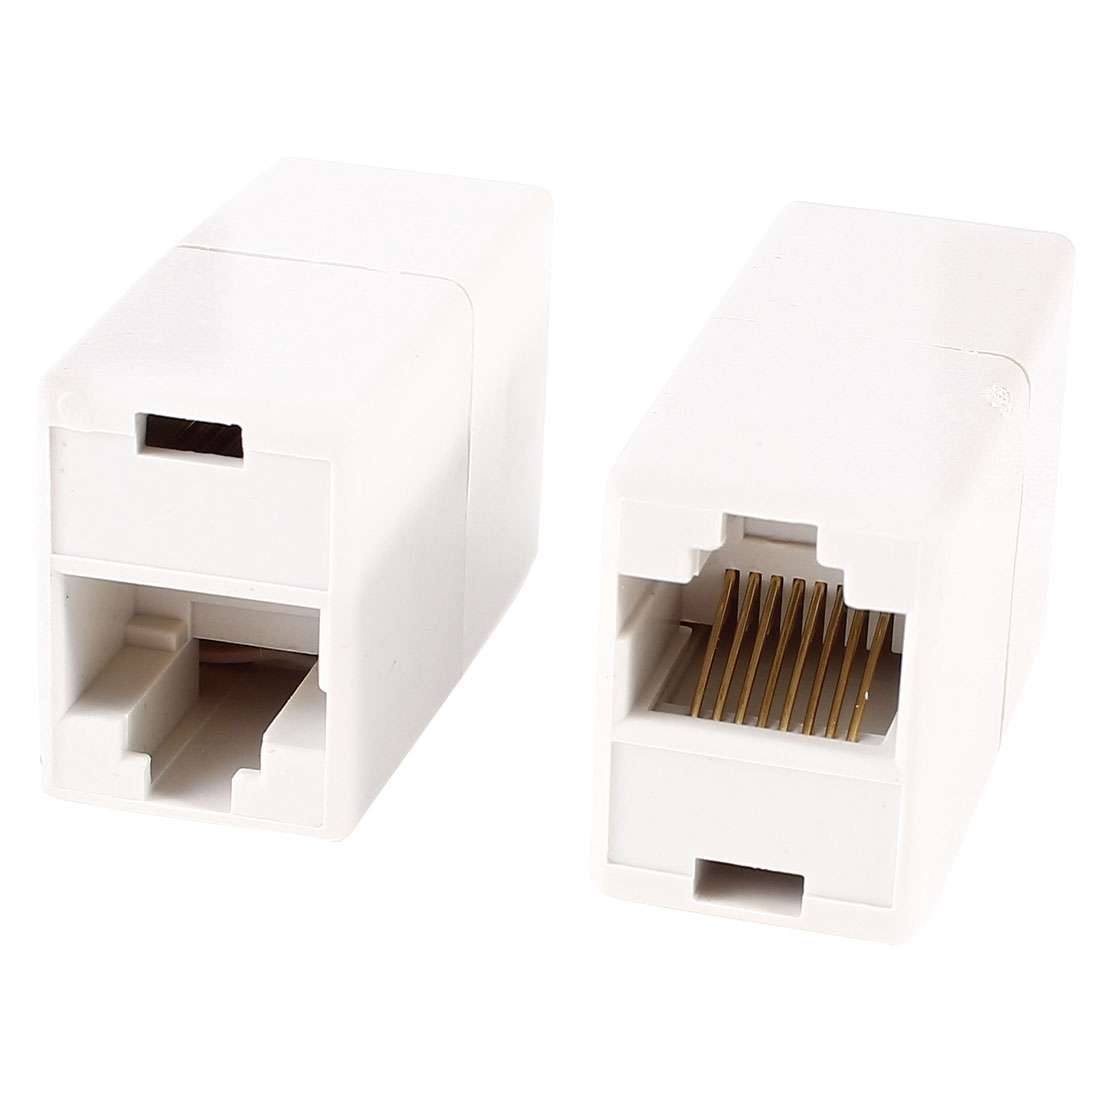 2 Pcs White RJ45 8P8C Female to Female Network Cable Coupler Connector